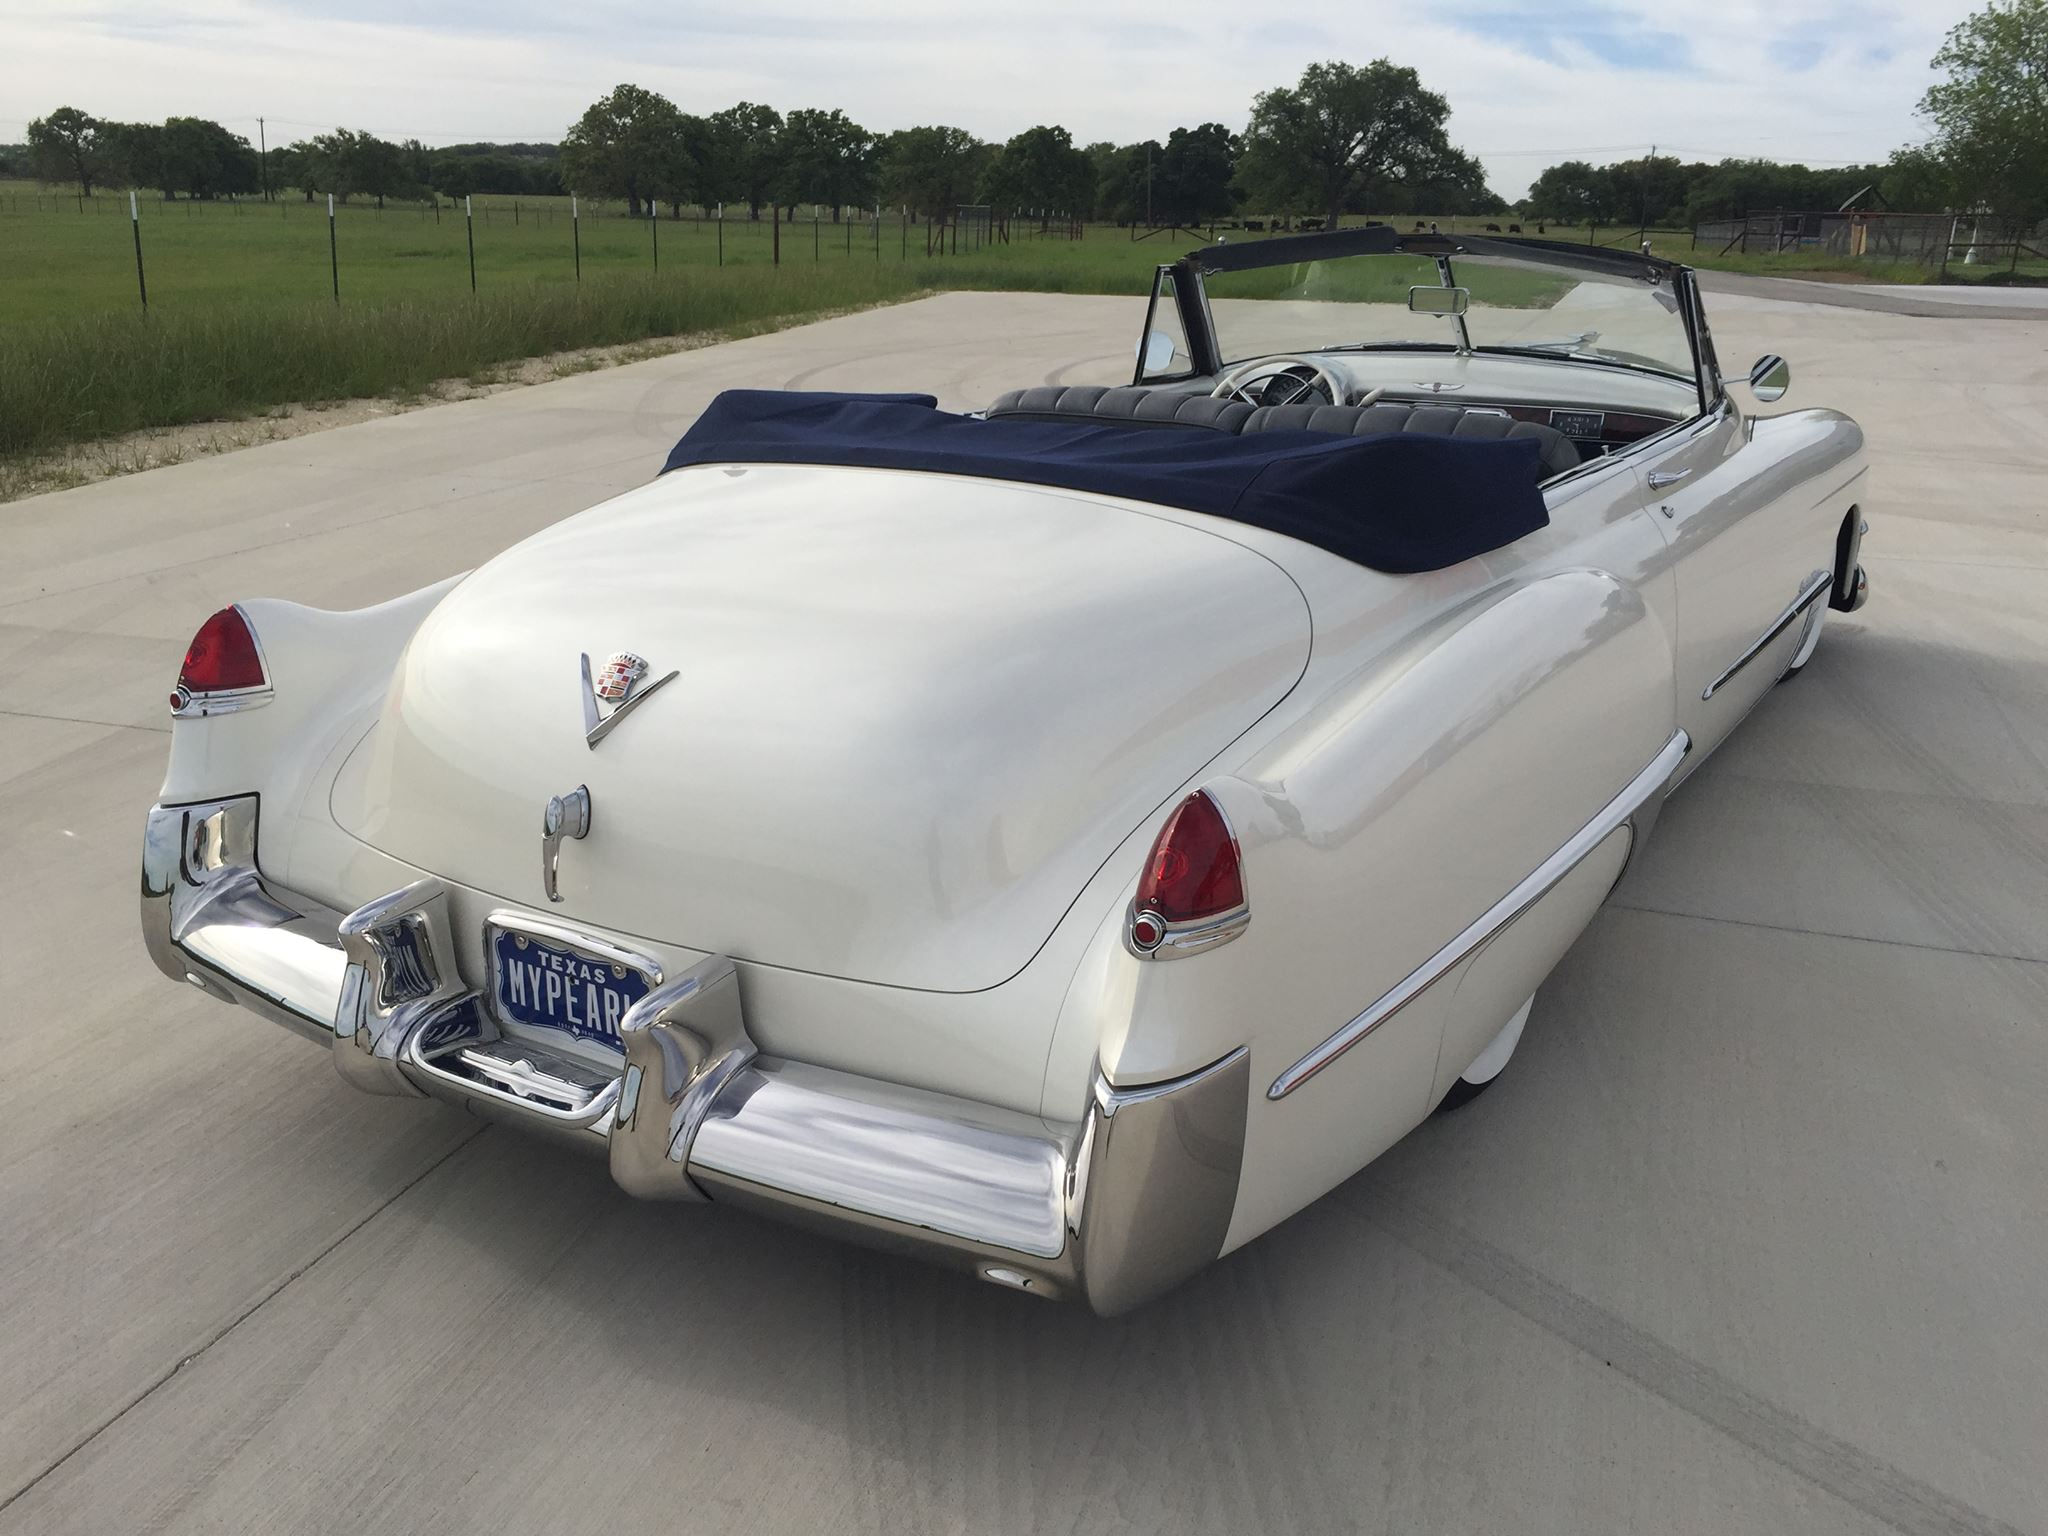 1949 cadillac series 62 with a supercharged lsx engine swap depot 1951 cadillac for the cadillac the team wanted a strong foundation to handle some serious power so the factory chassis was rolled away for a custom one by the roadster